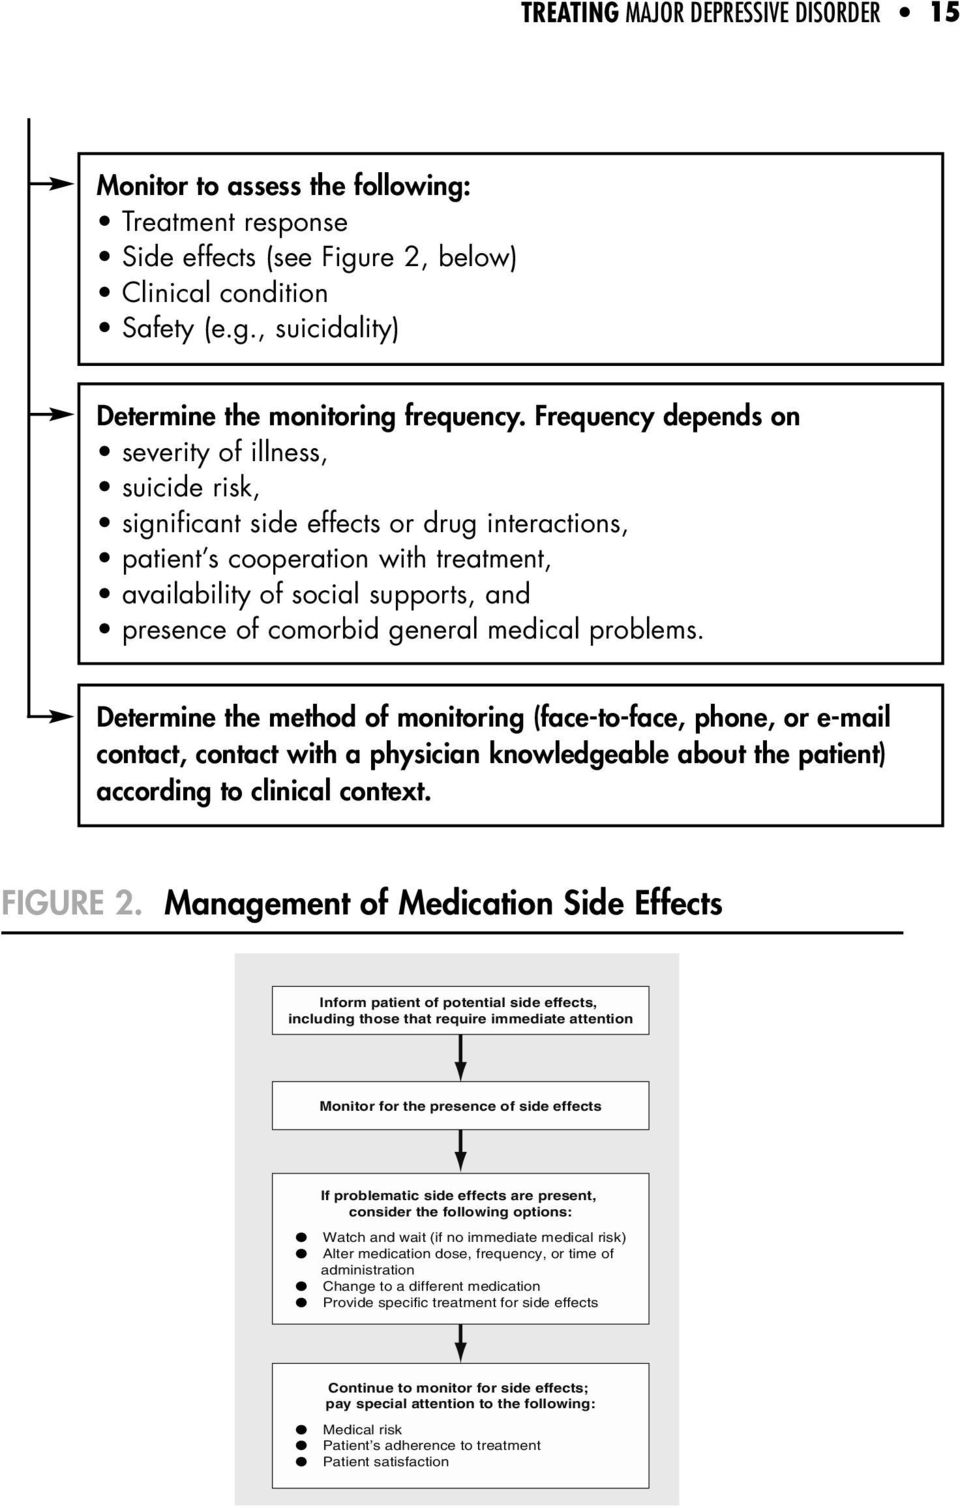 general medical problems. Determine the method of monitoring (face-to-face, phone, or e-mail contact, contact with a physician knowledgeable about the patient) according to clinical context. FIGURE 2.